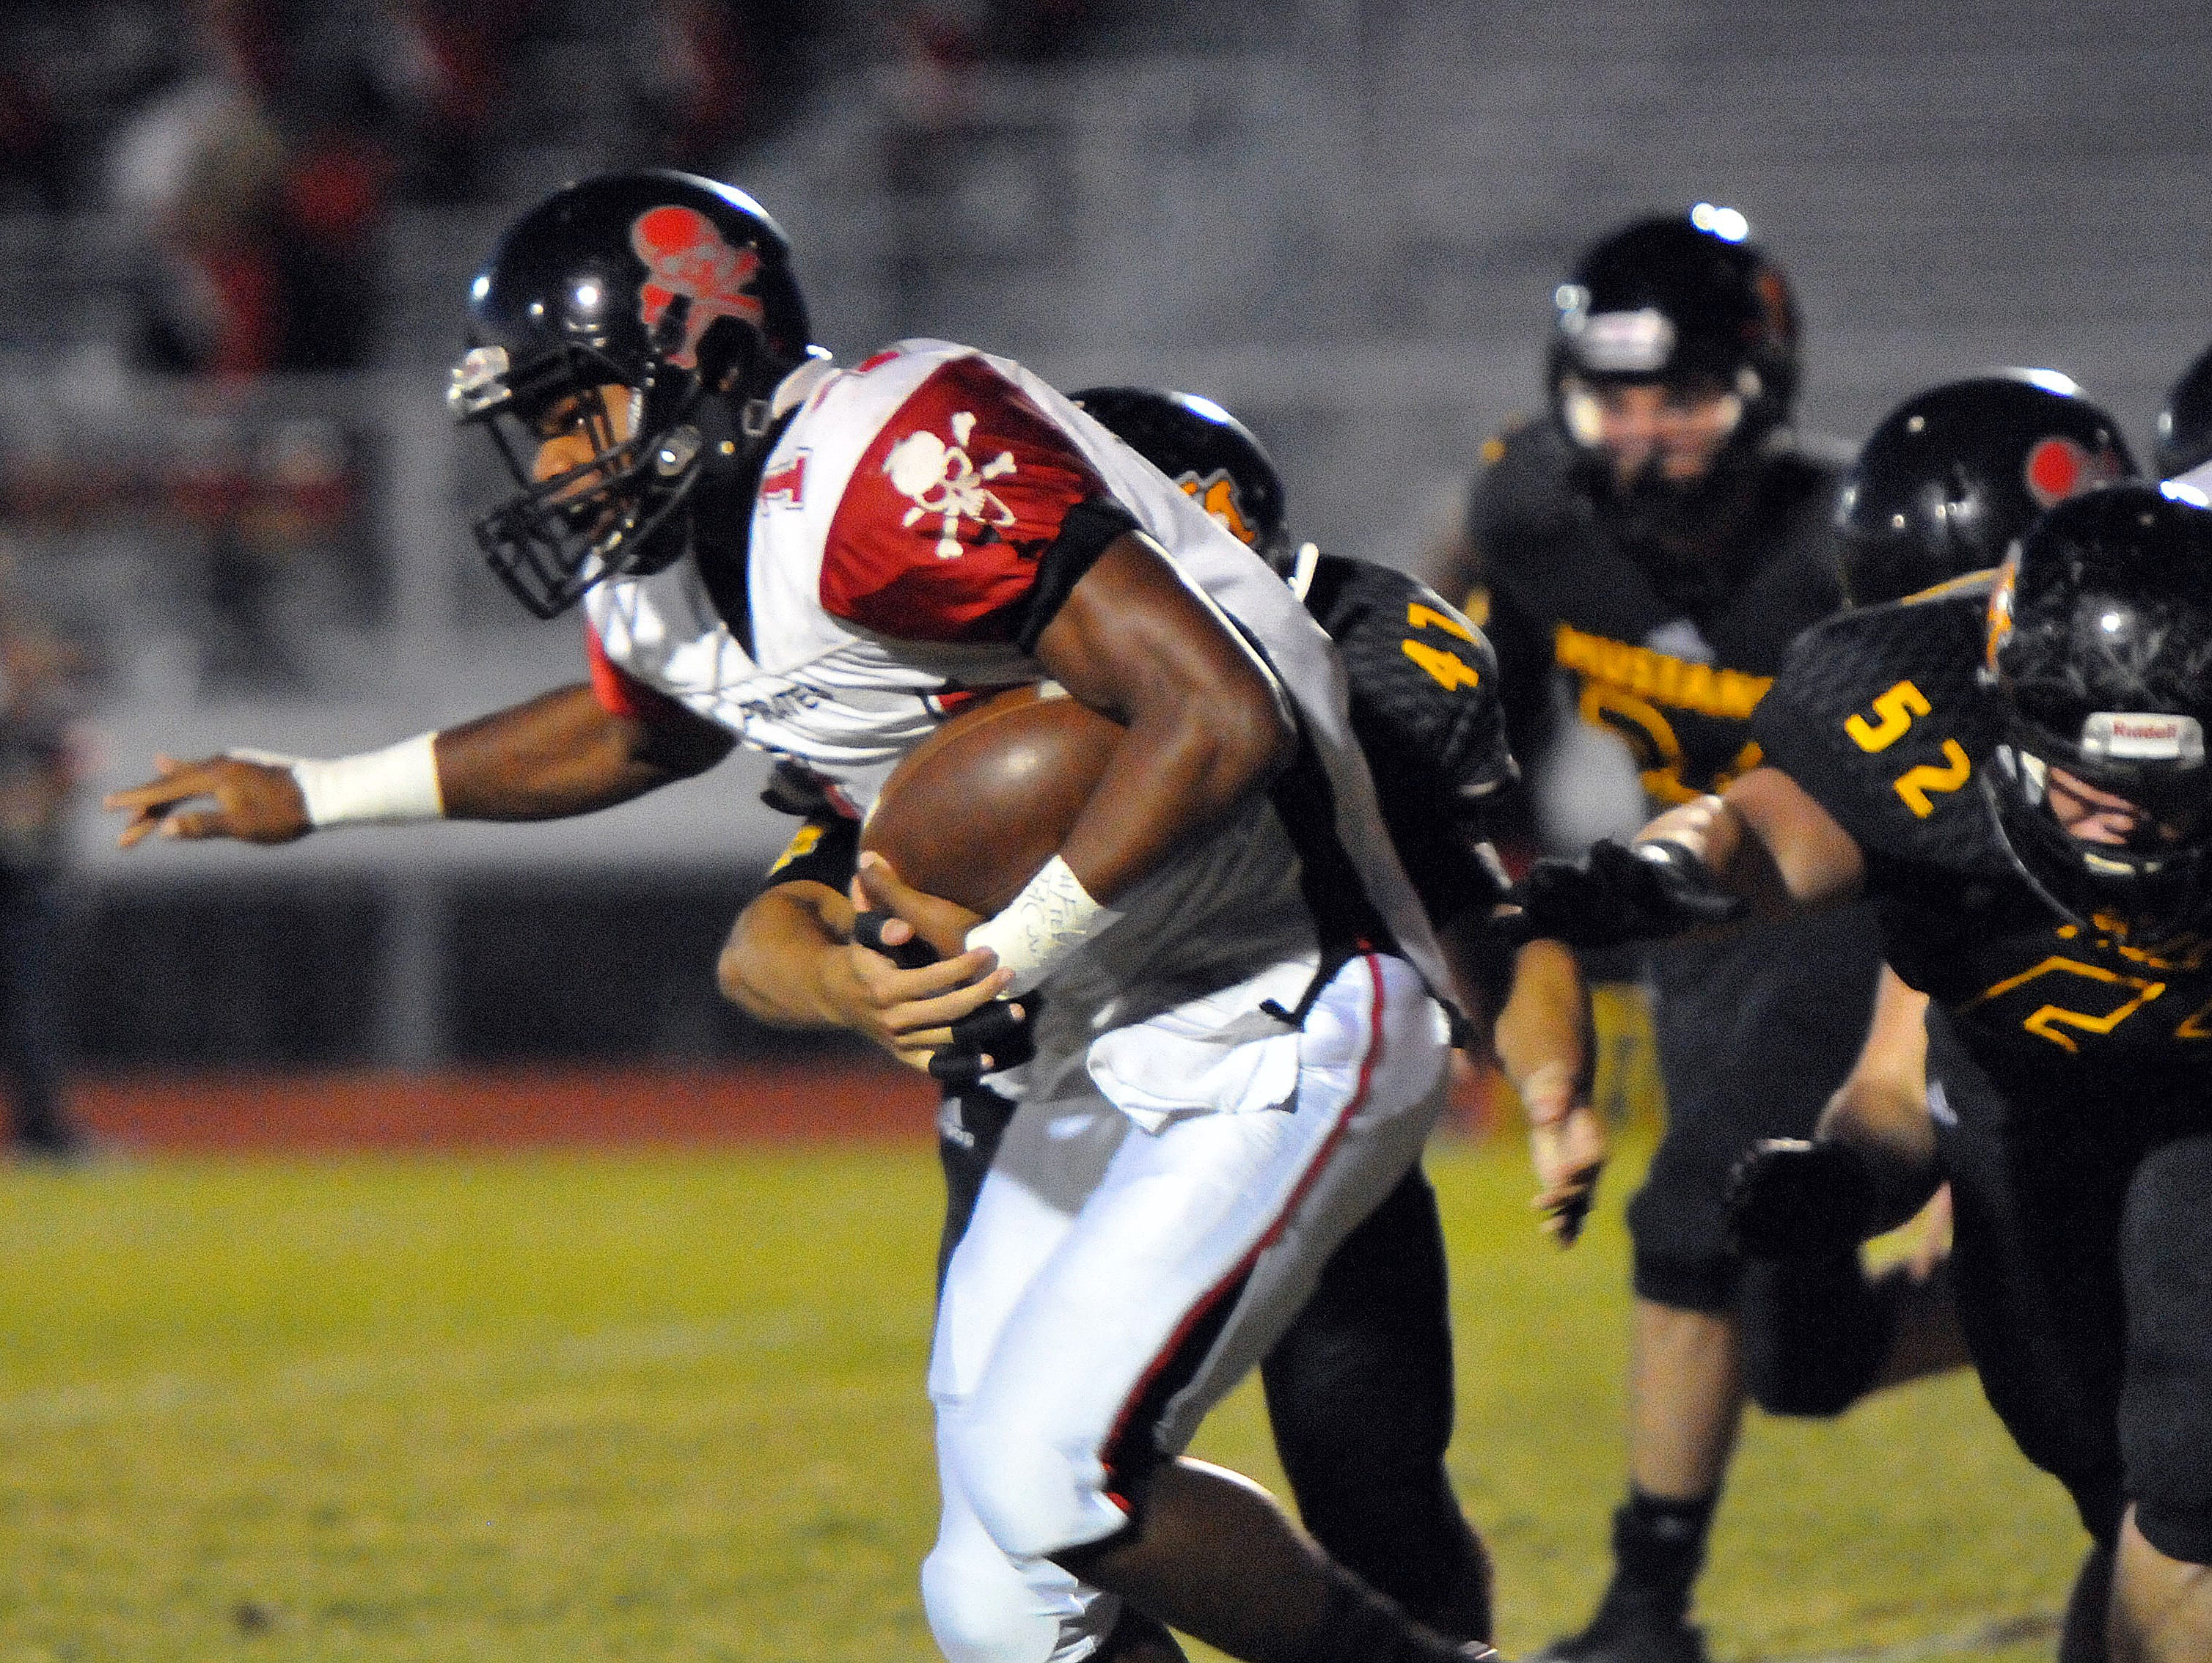 Palm Bay High's #14 Brian Lankford-Johnson picks up some nice yards past a host of Merritt Island defenders during Friday nights game held at Merritt Island High's Mustang stadium.